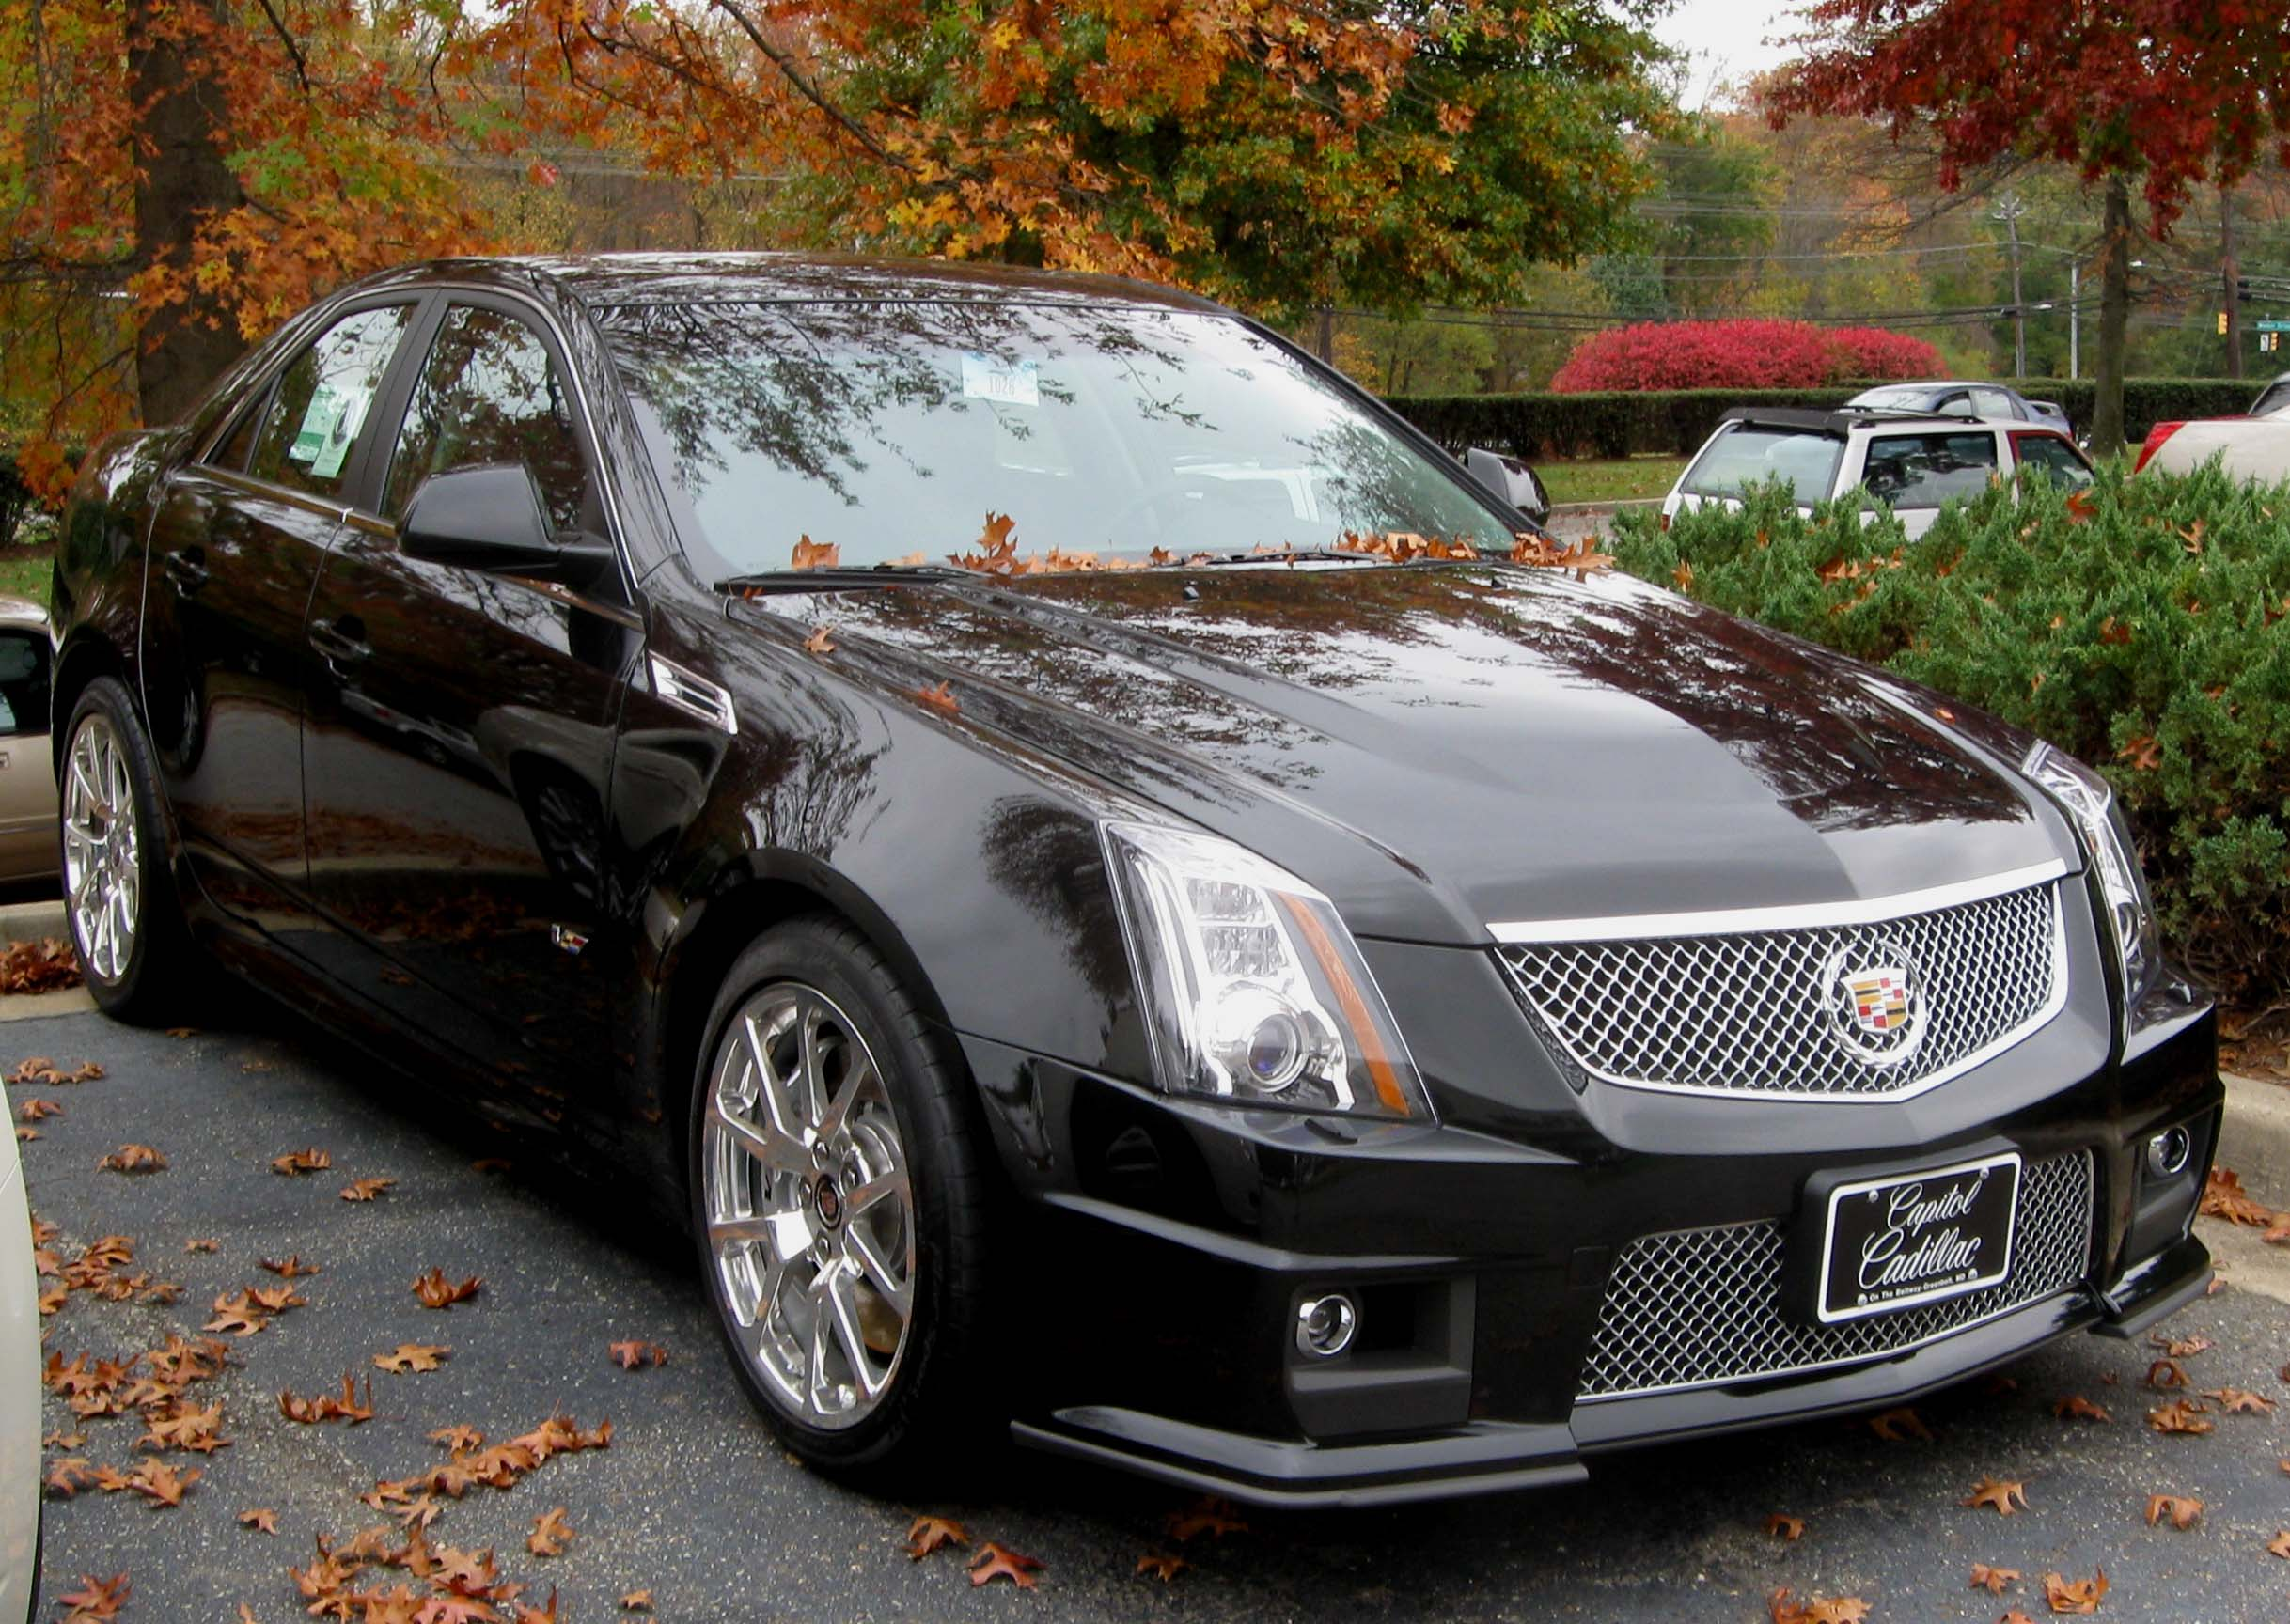 cadillac cts v technical details history photos on. Black Bedroom Furniture Sets. Home Design Ideas